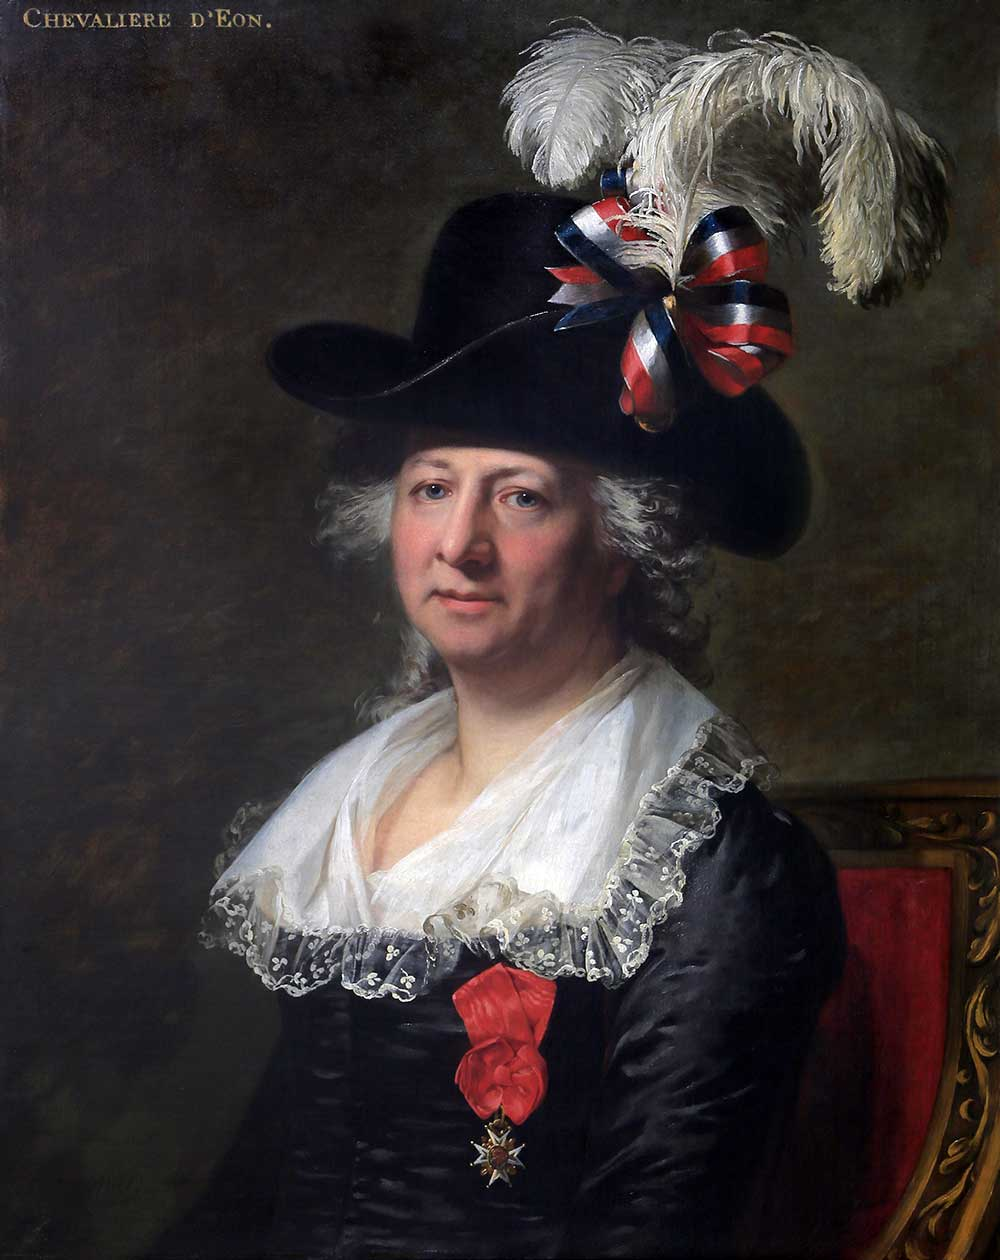 Chevalier D'Eon by Jean Paul Mosnier